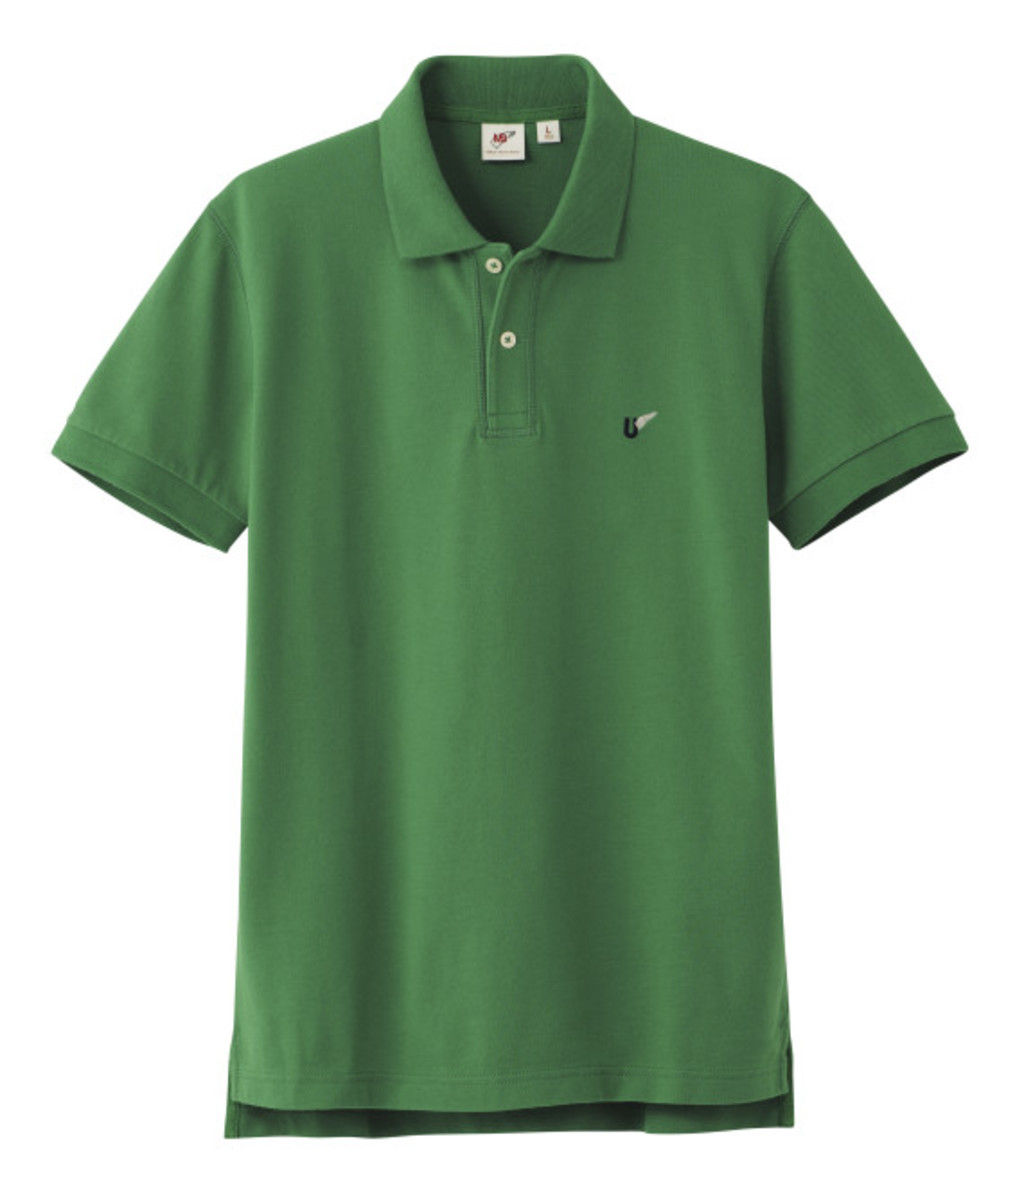 michael-bastian-x-uniqlo-mens-polo-shirt-collection-2013-26